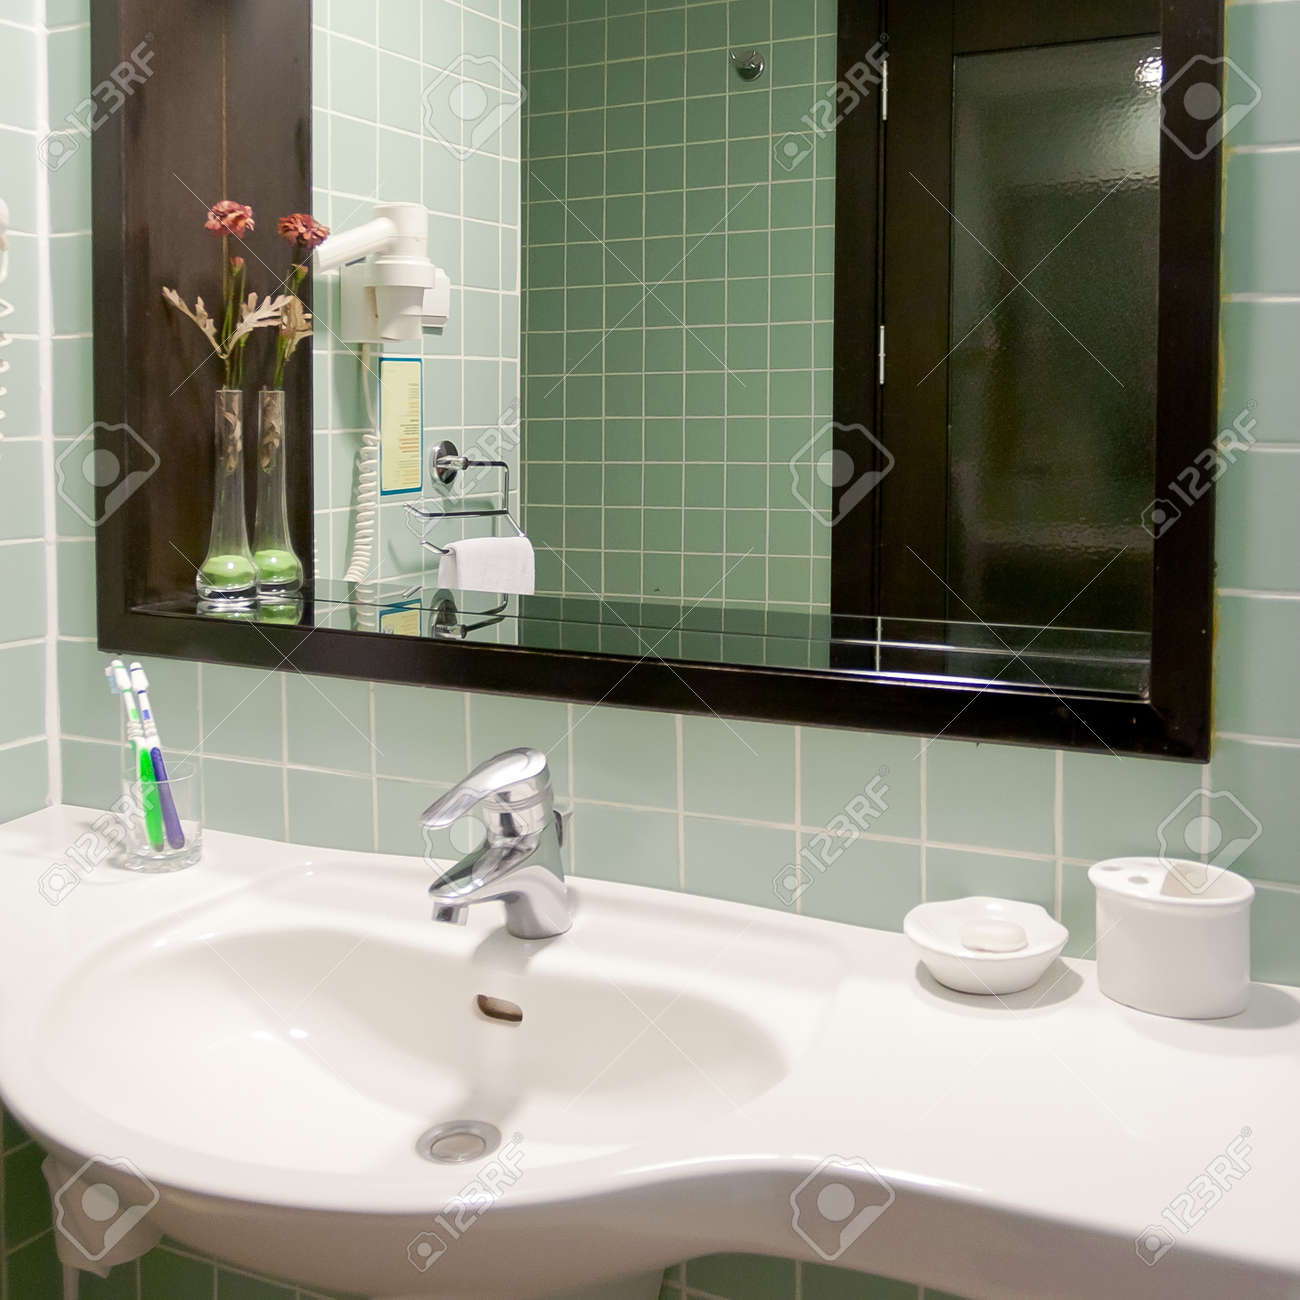 Modern Style Interior Design Of Bathroom Stock Photo, Picture ... - ^